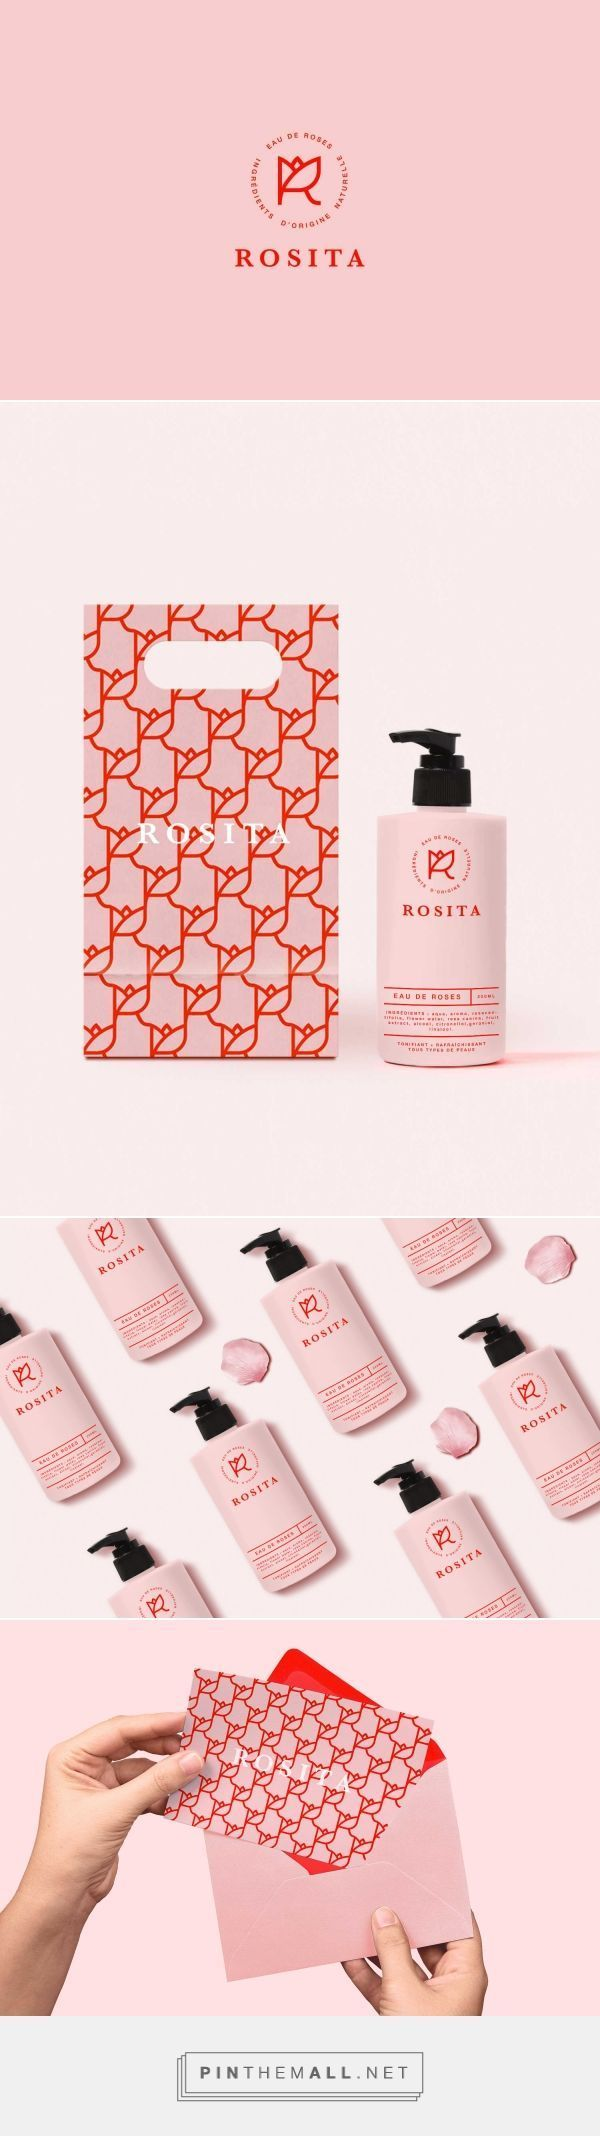 Rosita, a fictitious brand of rose water. Designed by JOAM